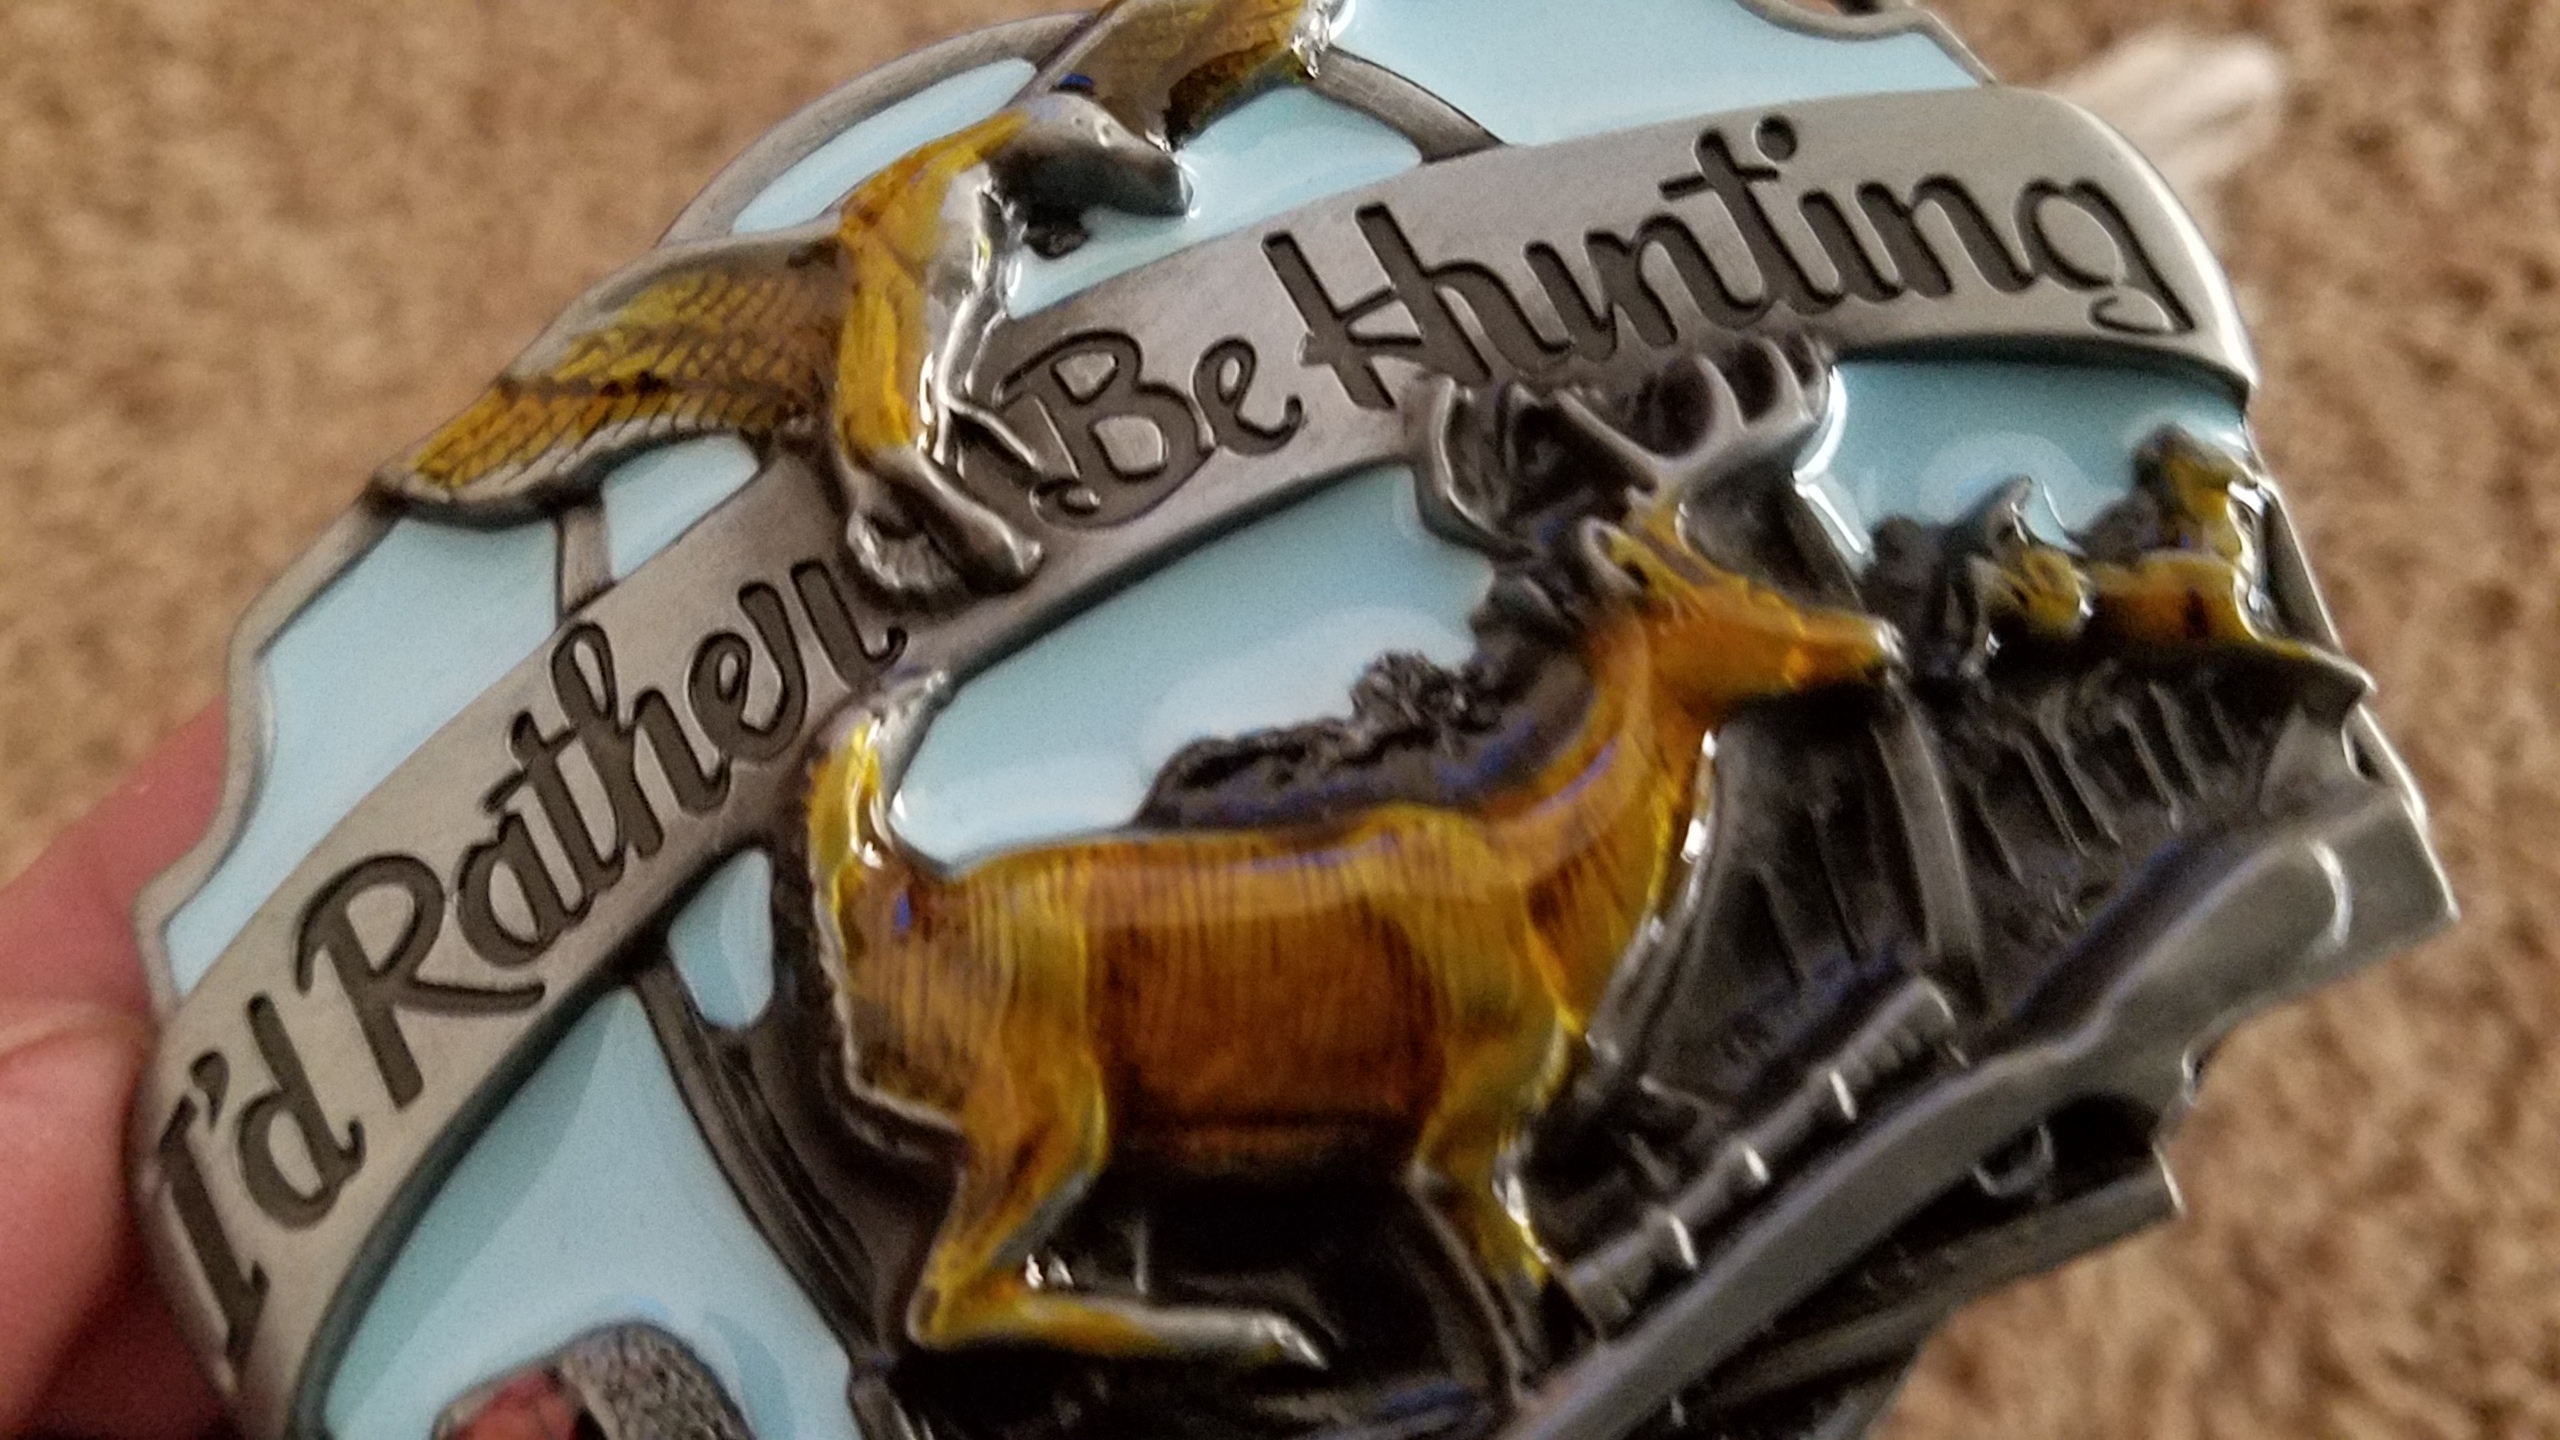 Just love this neat buckle!